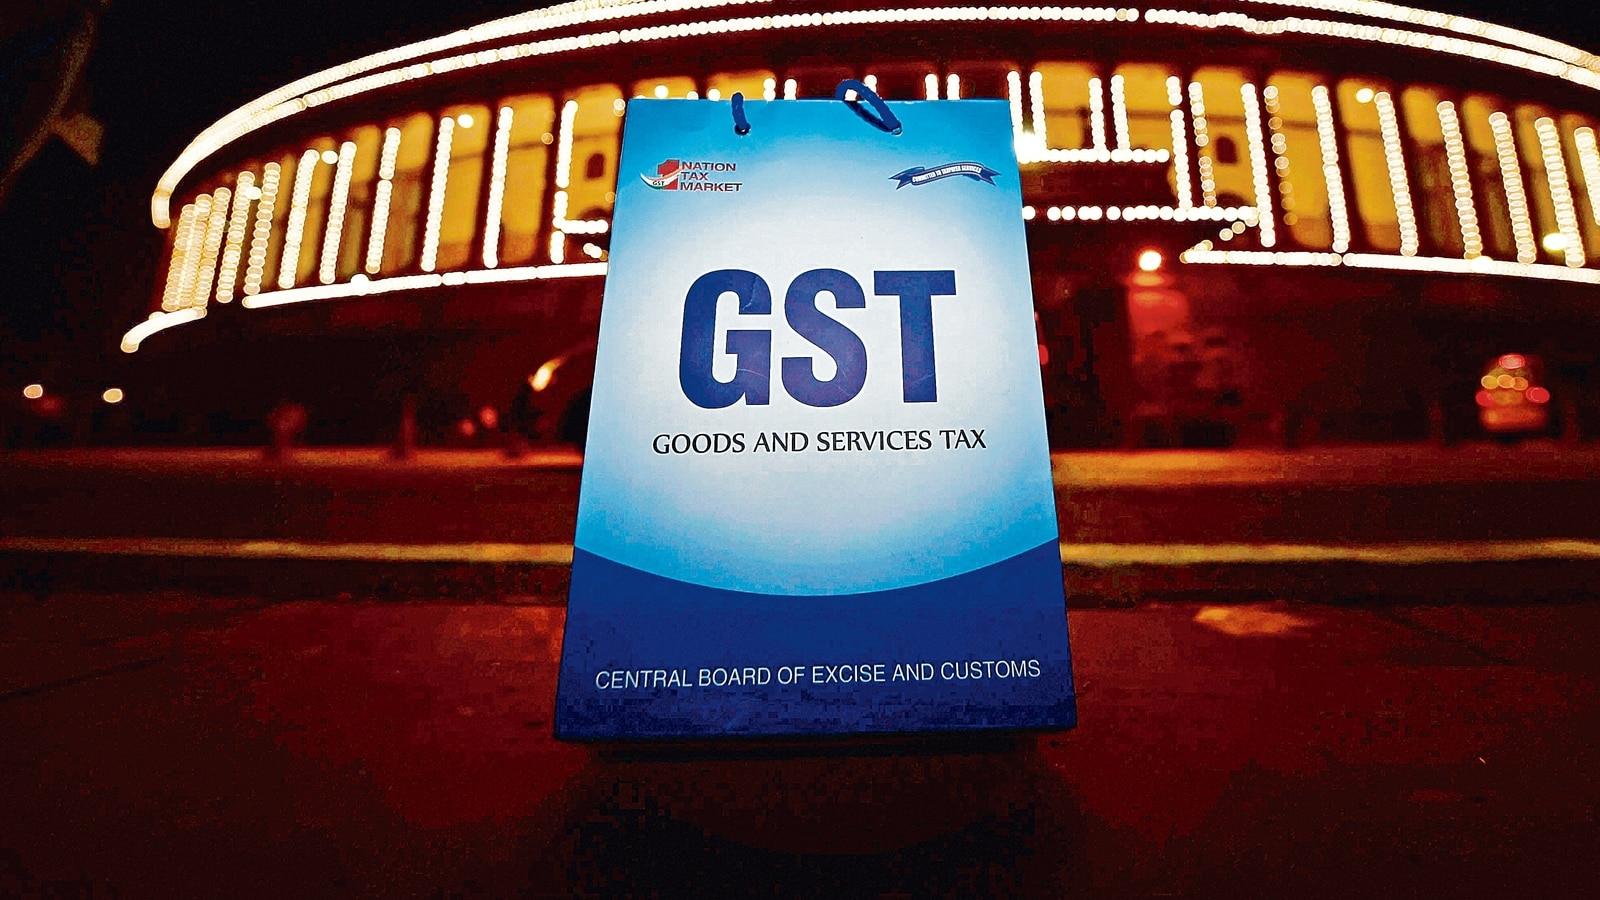 Four years of GST: Success, or not quite? - Hindustan Times